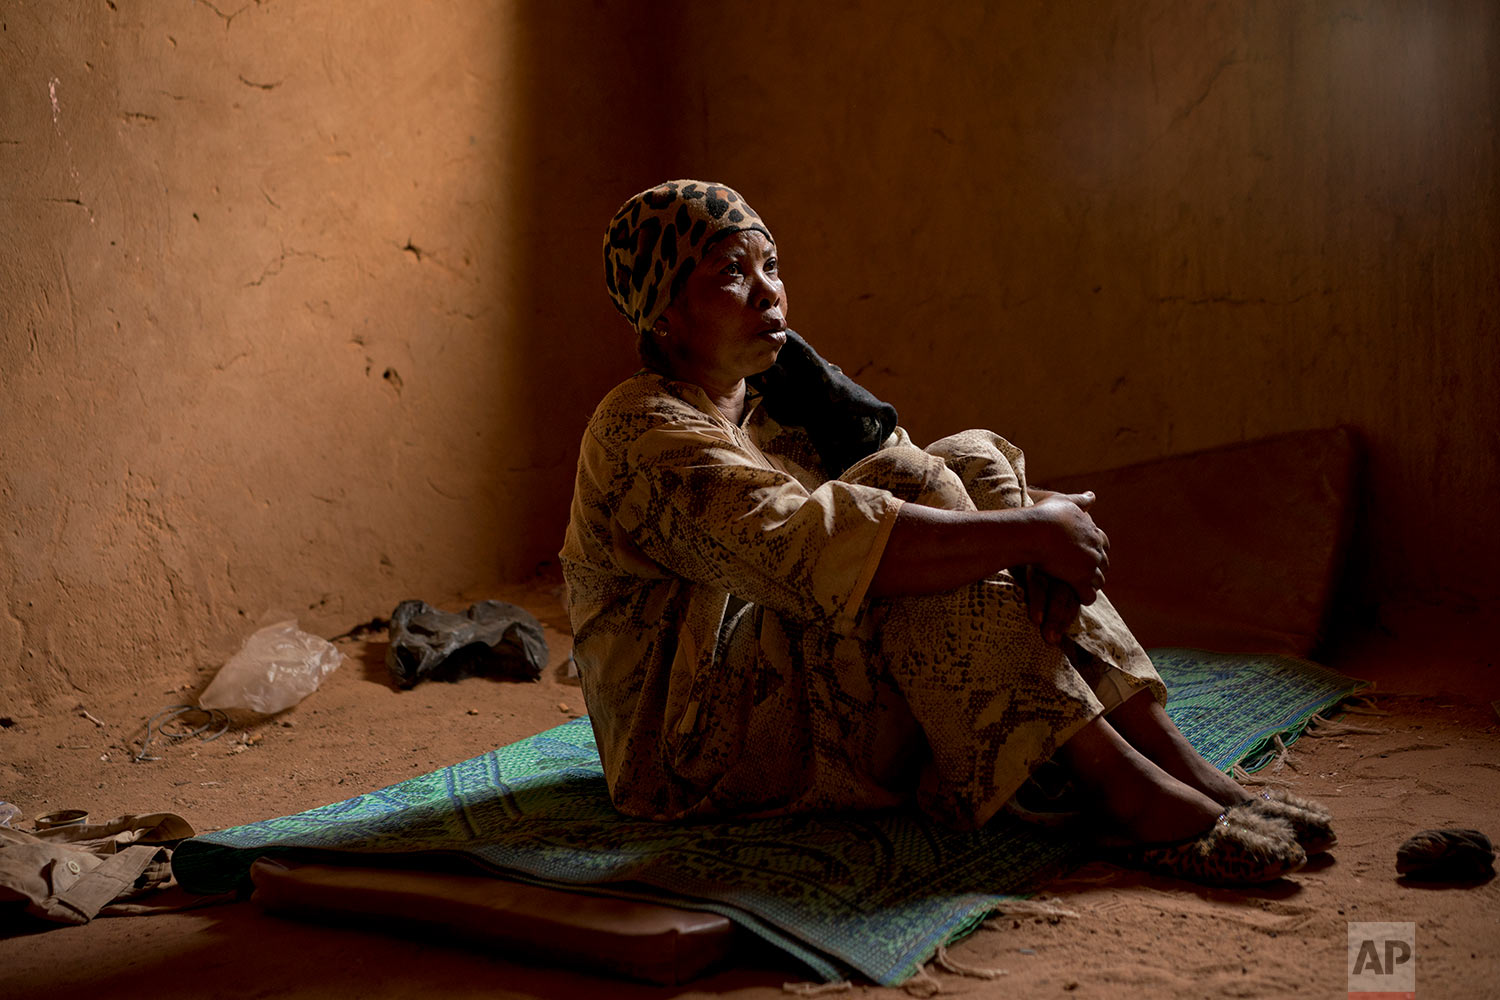 Janet Kamara, from Liberia, sits during an interview conducted in an IOM transit center in Arlit, Niger, on June 2, 2018. (AP Photo/Jerome Delay)